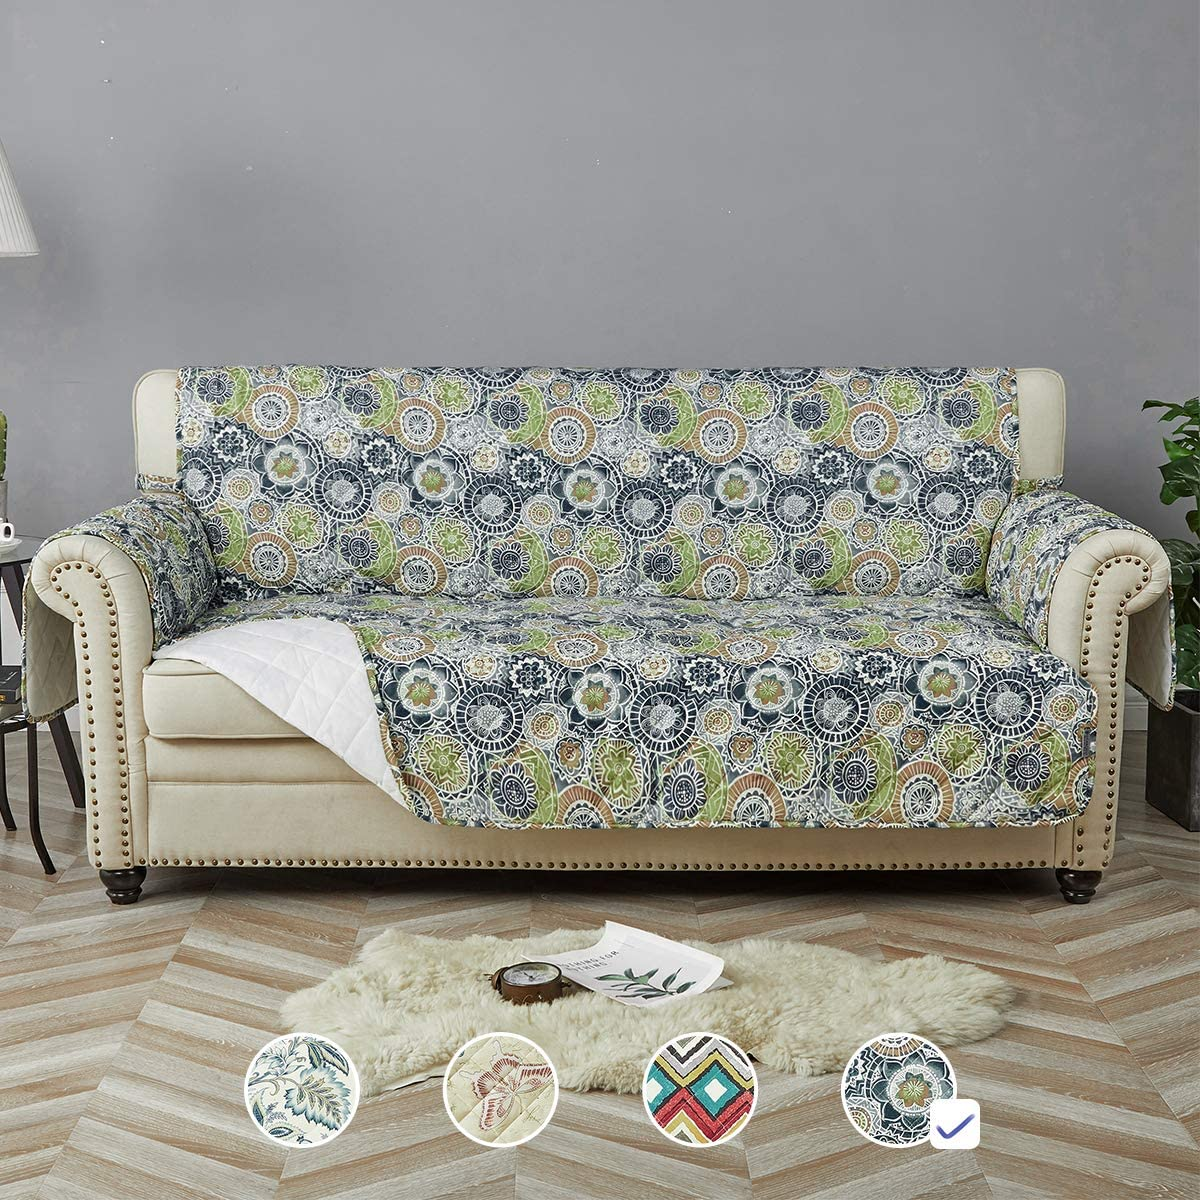 STONECREST Sofa mart Cover Water Slipcover Print Sale SALE% OFF Was Resistant